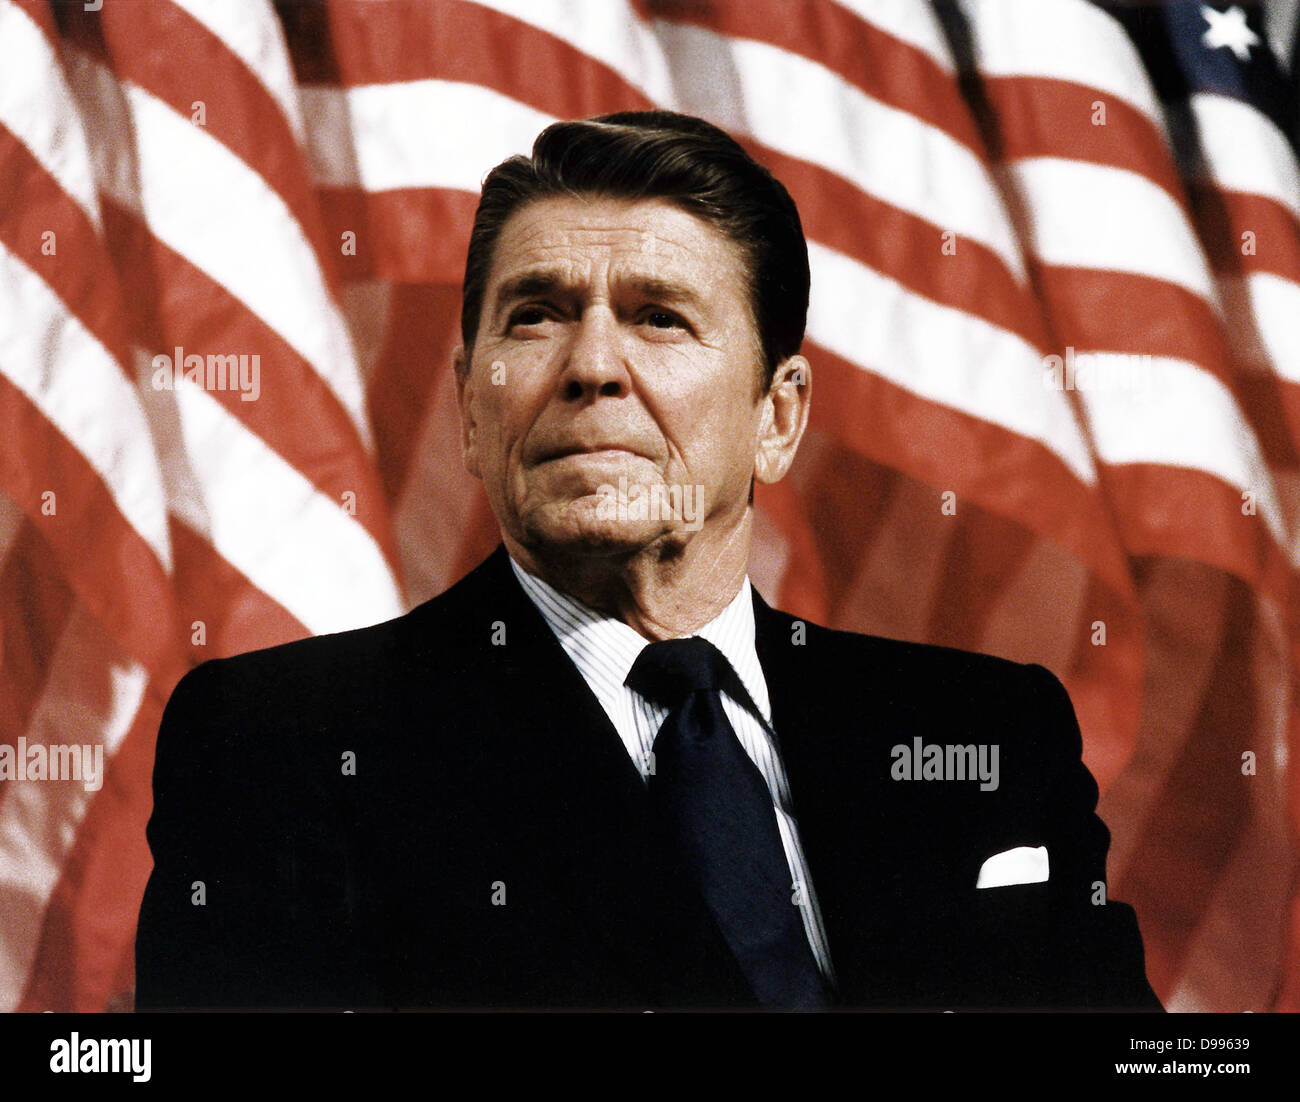 President Ronald Reagan at Durenberger Republican convention Rally, 1982 - Stock Image